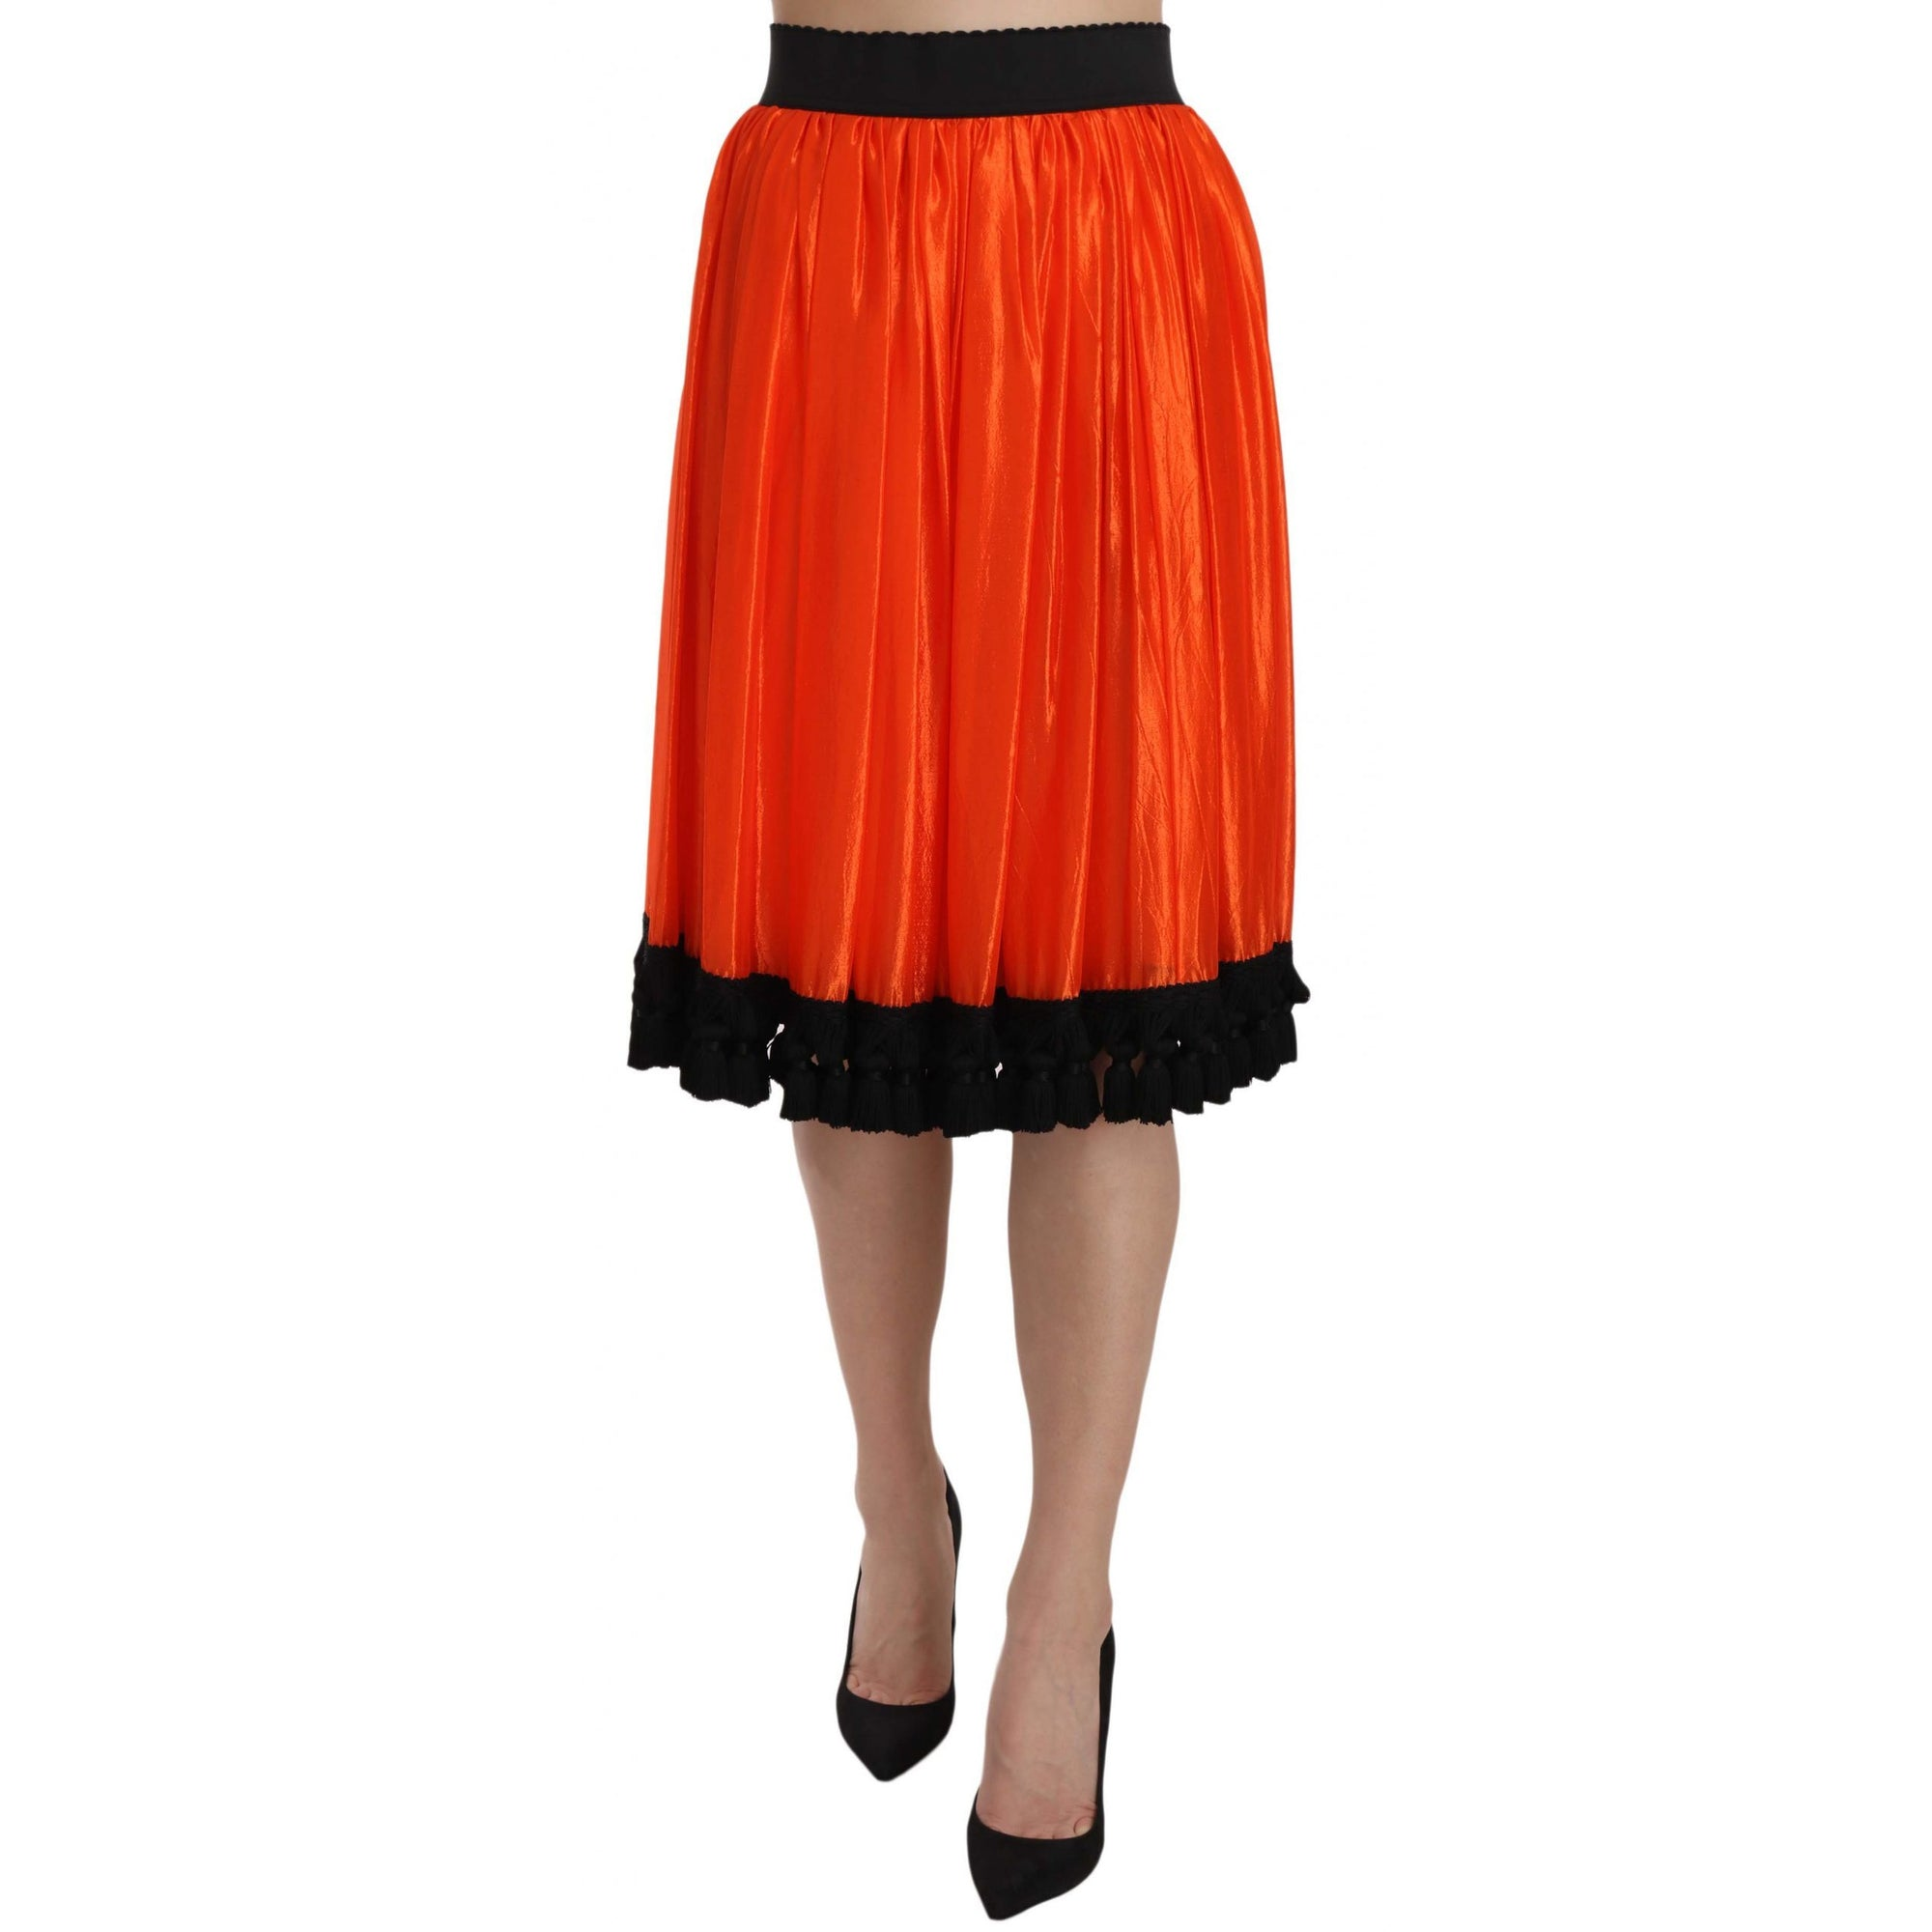 Orange High Waist Knee Length Skirt